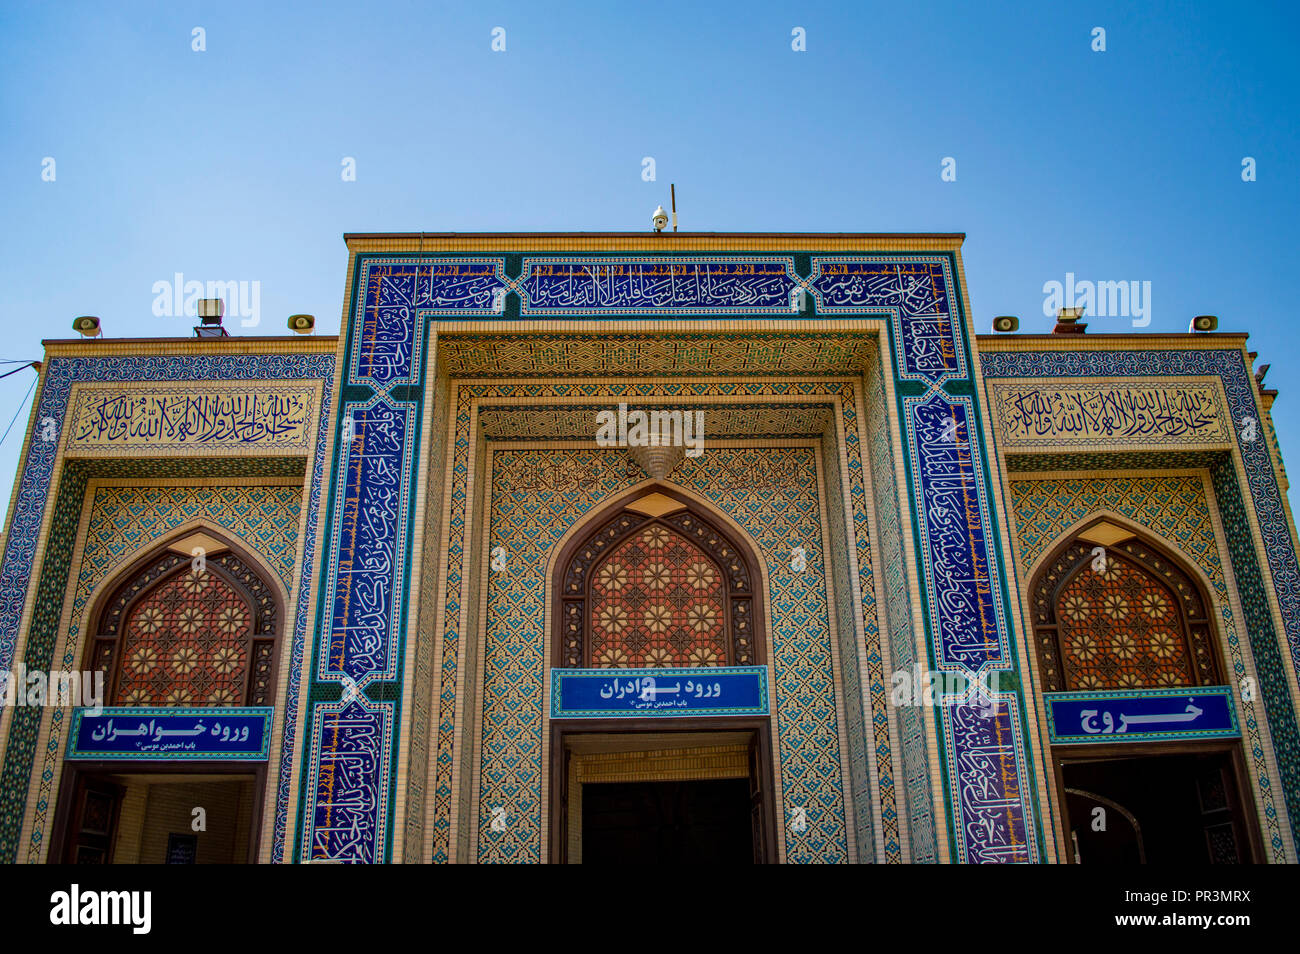 The entrance to Vakil Mosque in Shiraz, Iran - Stock Image